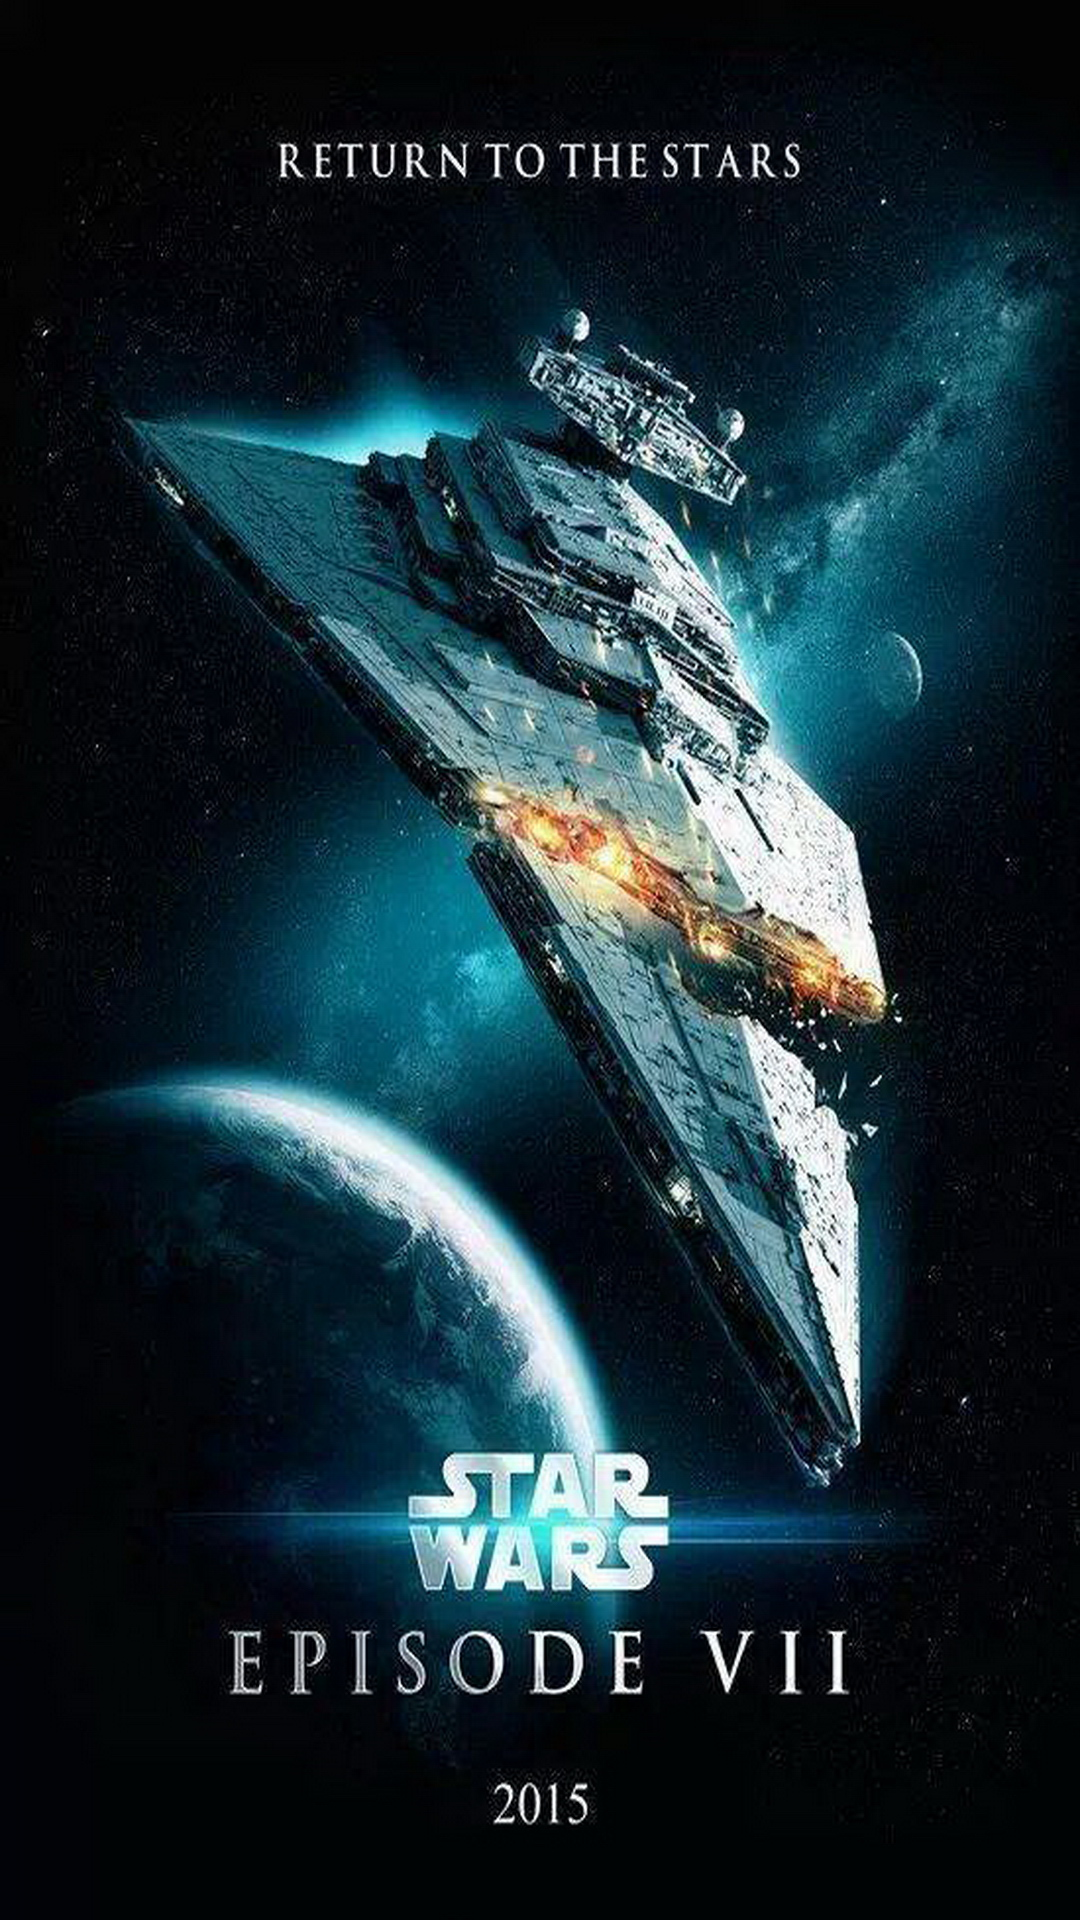 Star Wars Episode VII photos of Epic Star Wars Iphone Wallpaper 1080x1920